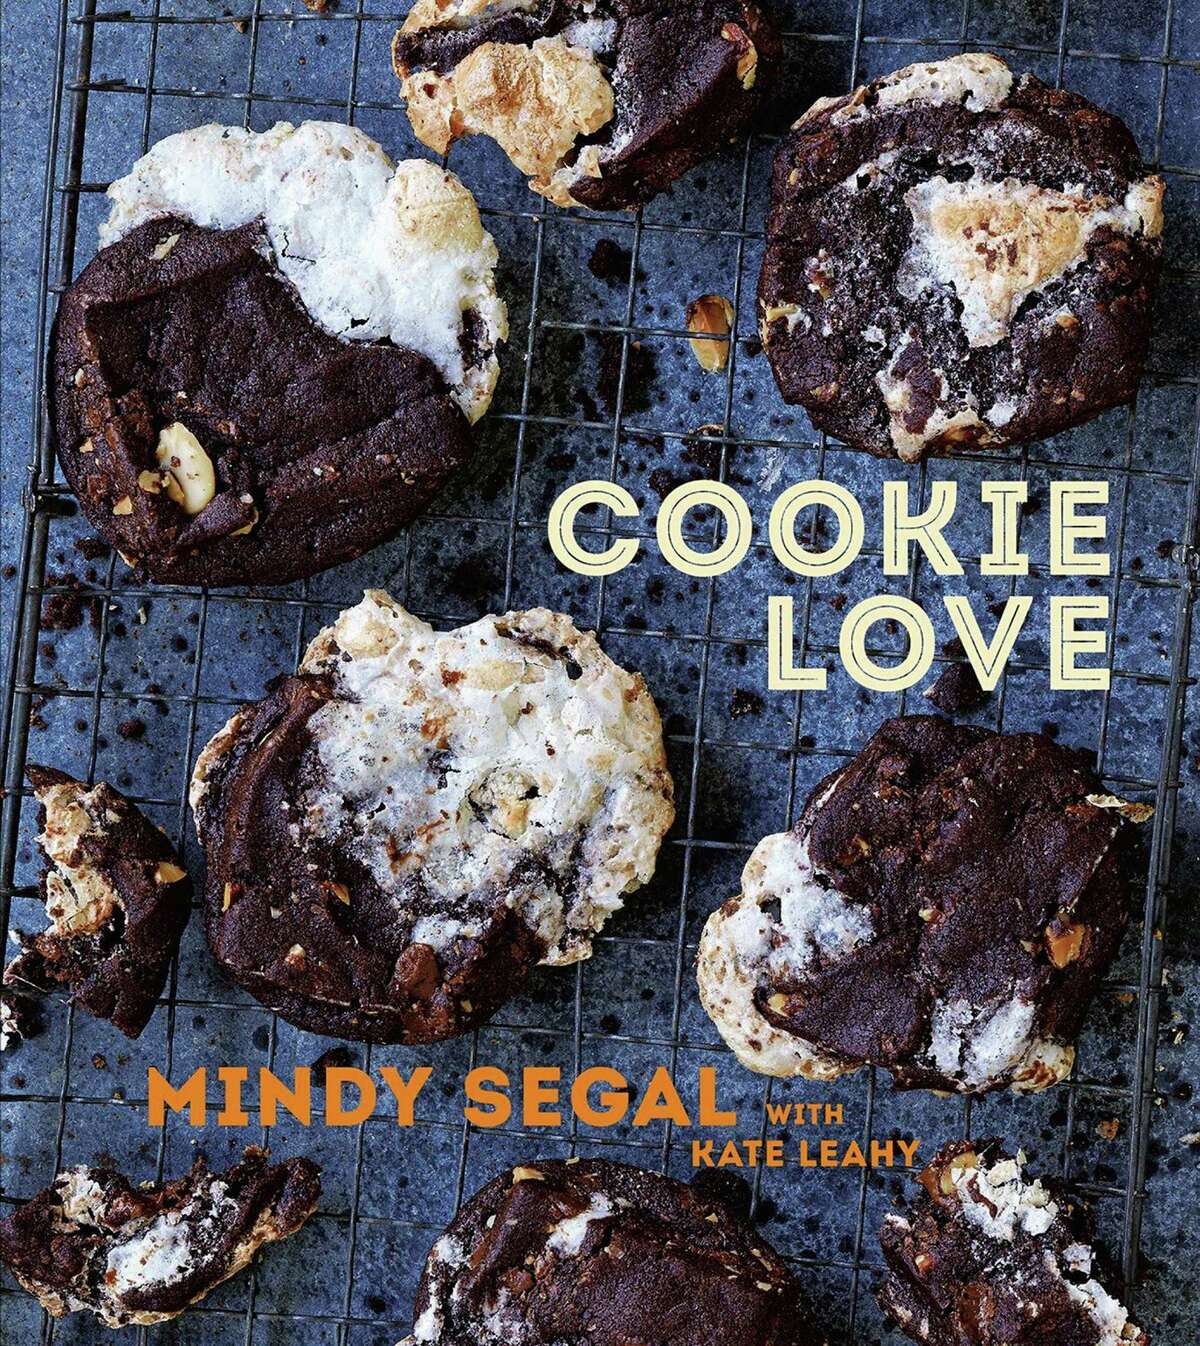 """Segal, a pastry chef and owner of Chicago's Hot Chocolate restaurant, has put out her first cookbook, """"Cookie Love."""""""